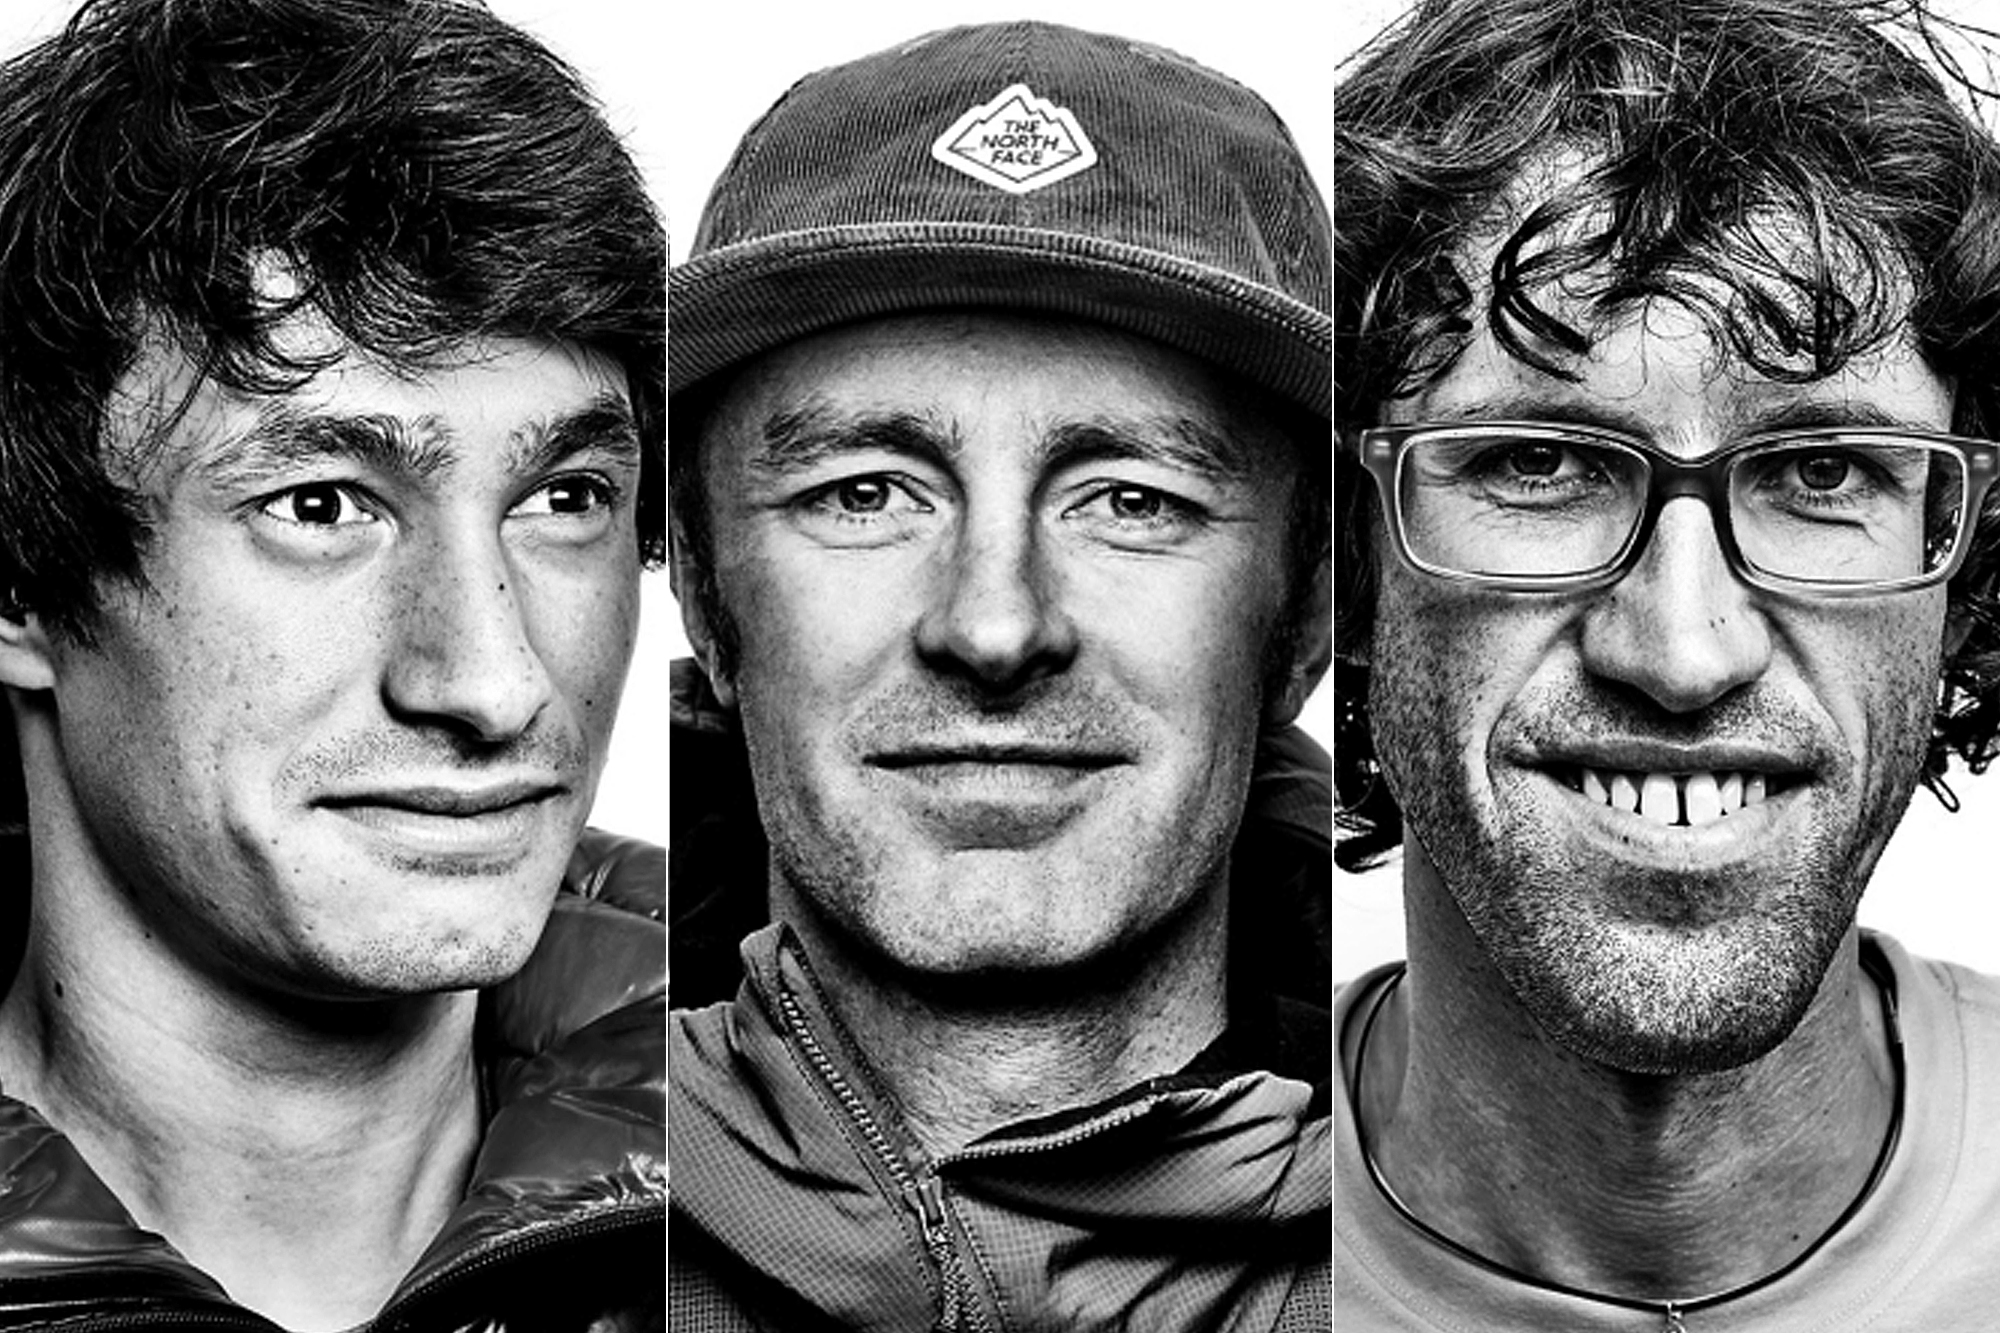 Jess Roskelley, David Lama and Hansjorg Auer